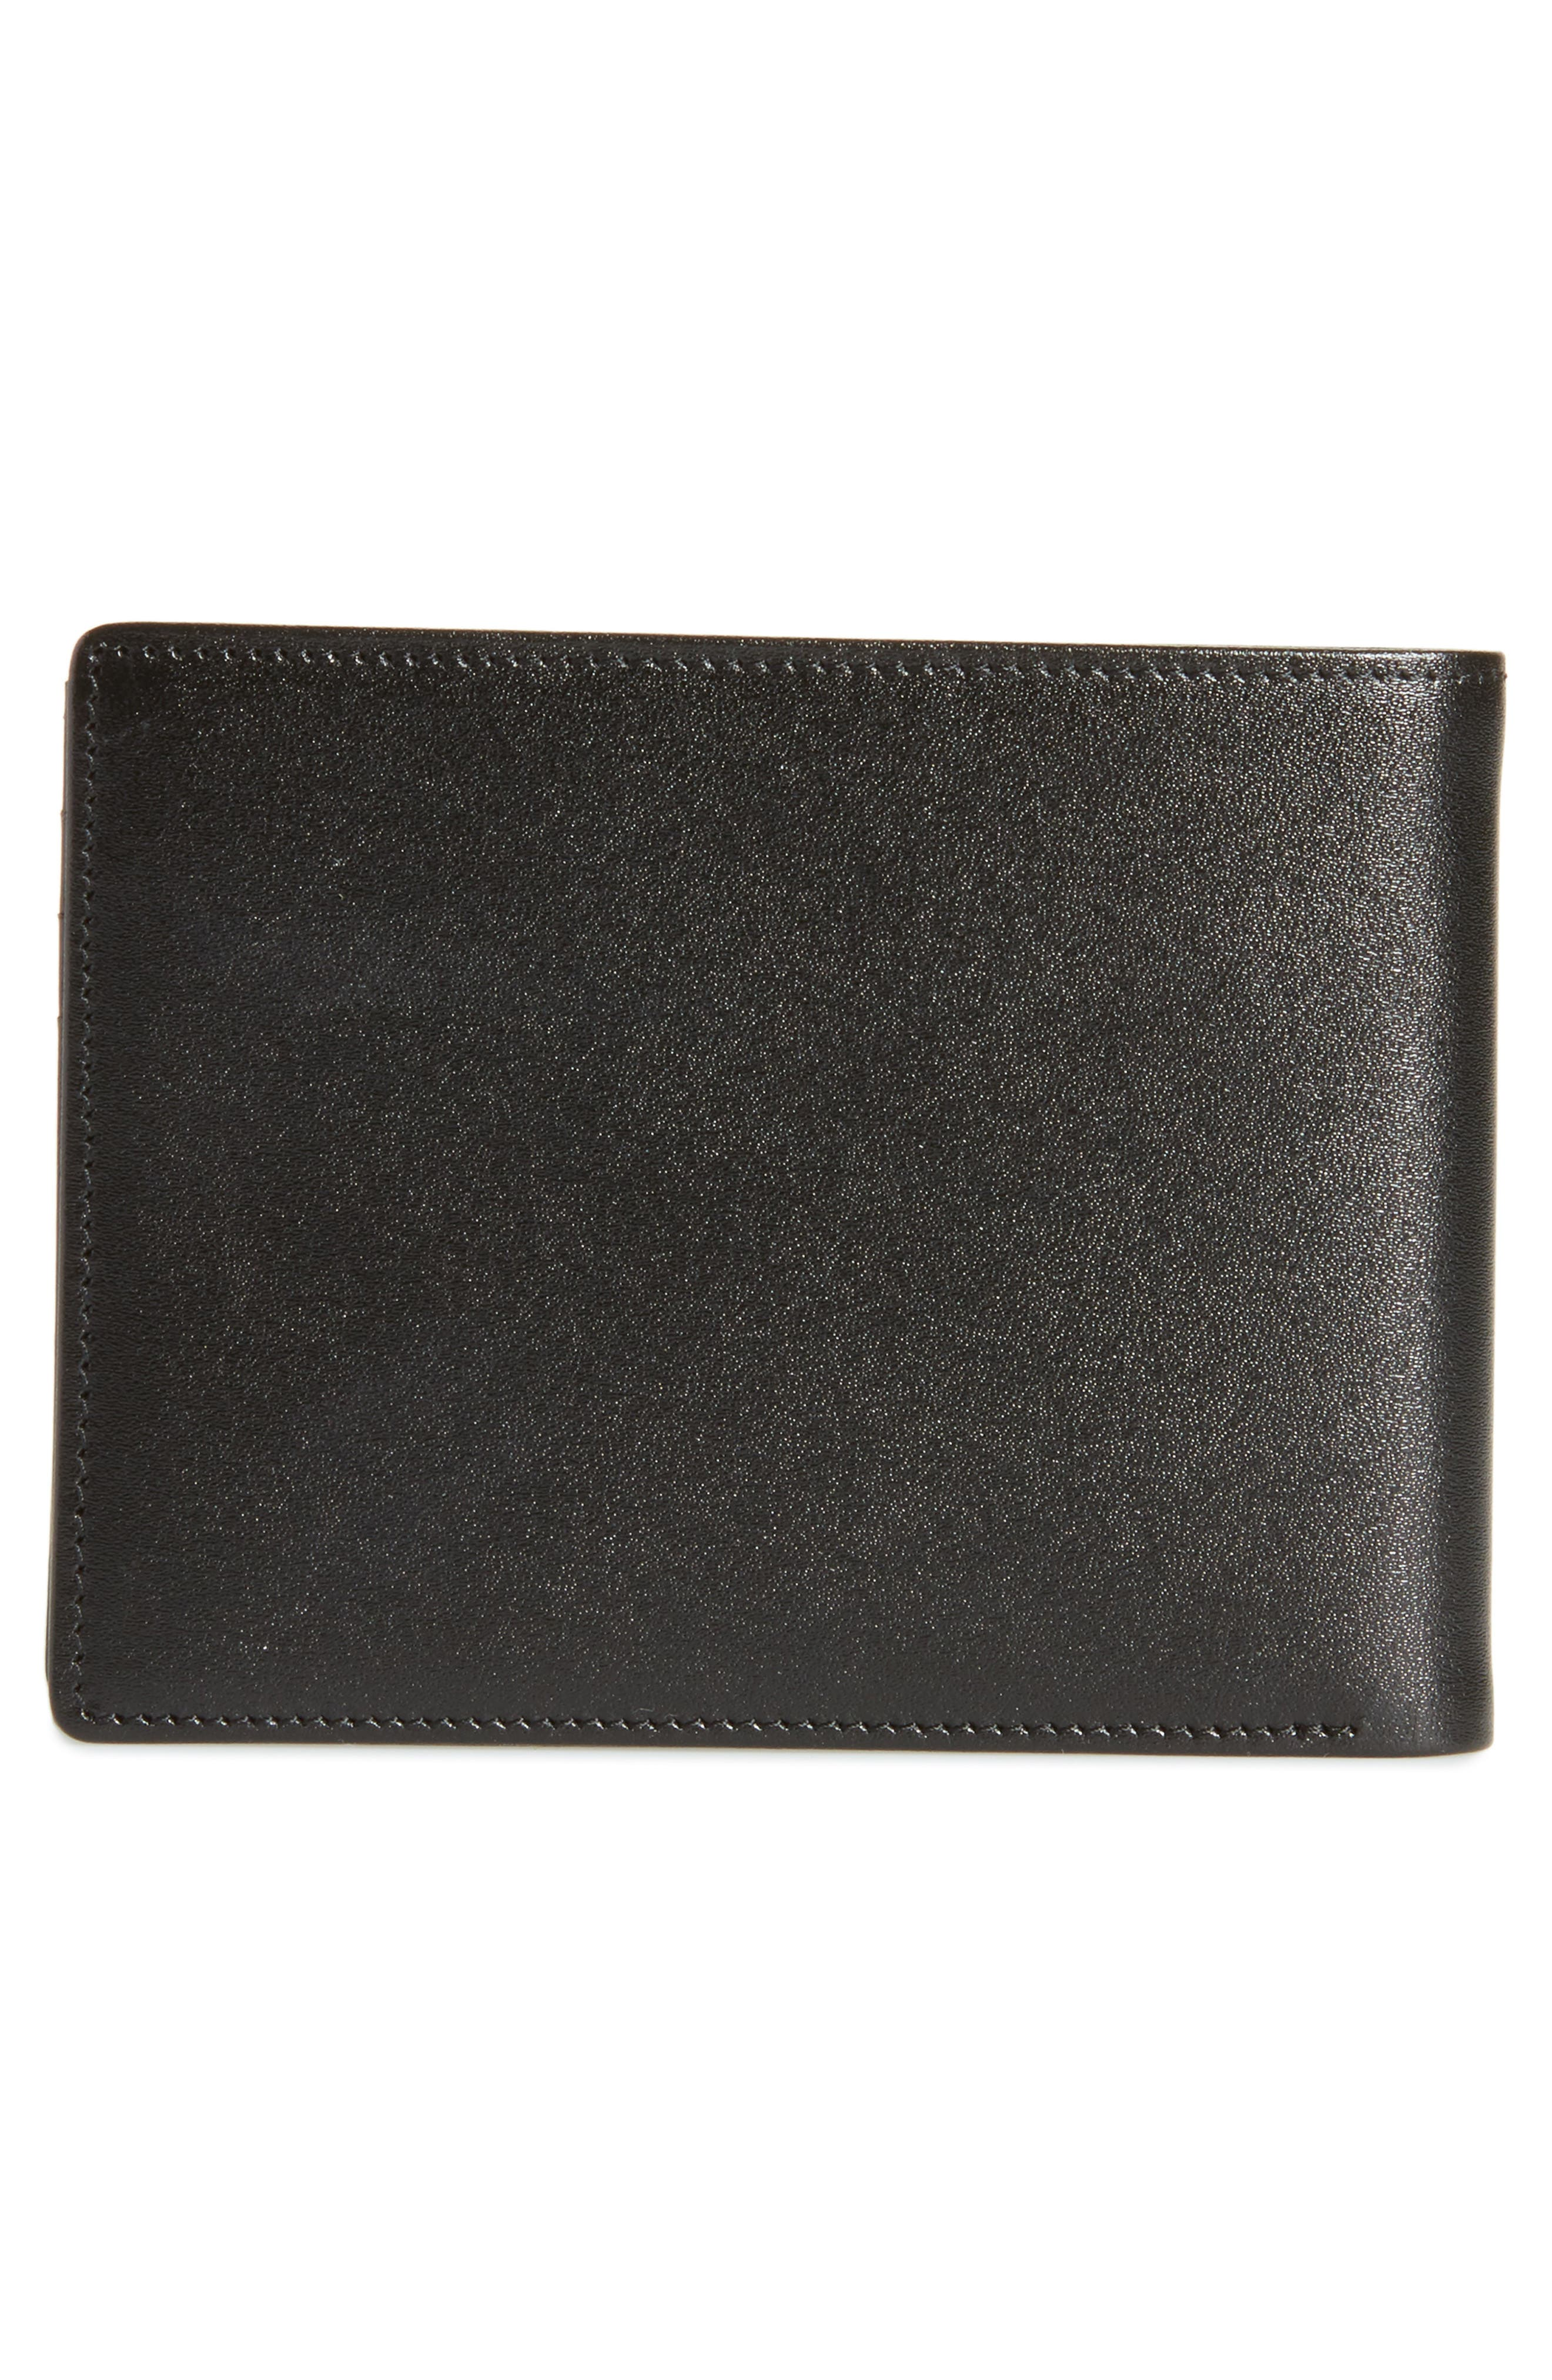 Bifold Leather Wallet,                             Alternate thumbnail 3, color,                             001